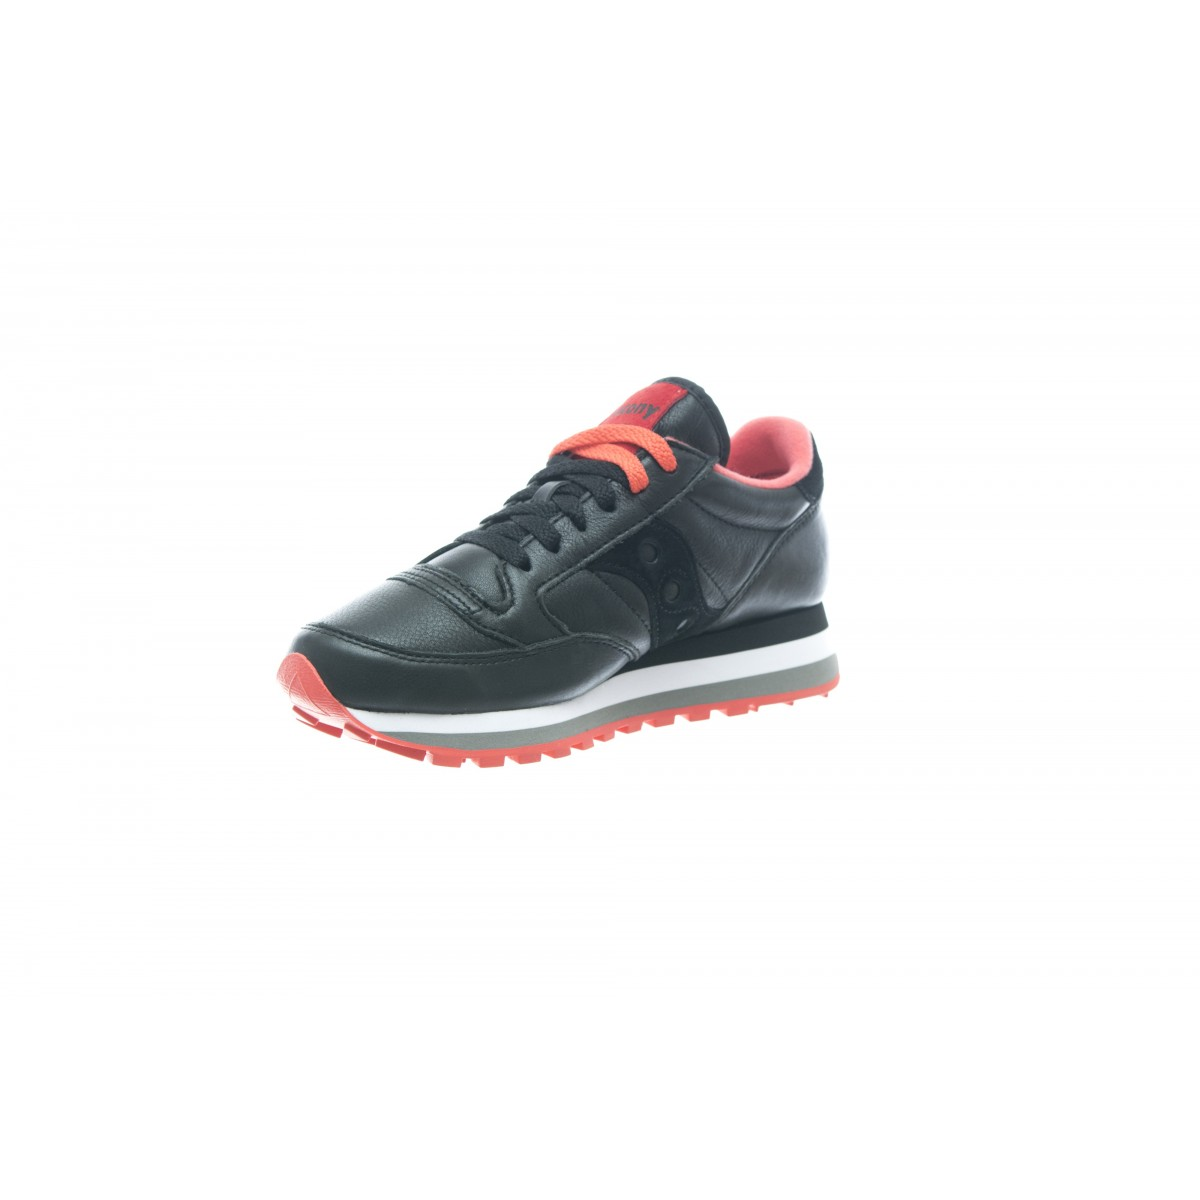 Scarpa - 60468 jazz triple leather limited